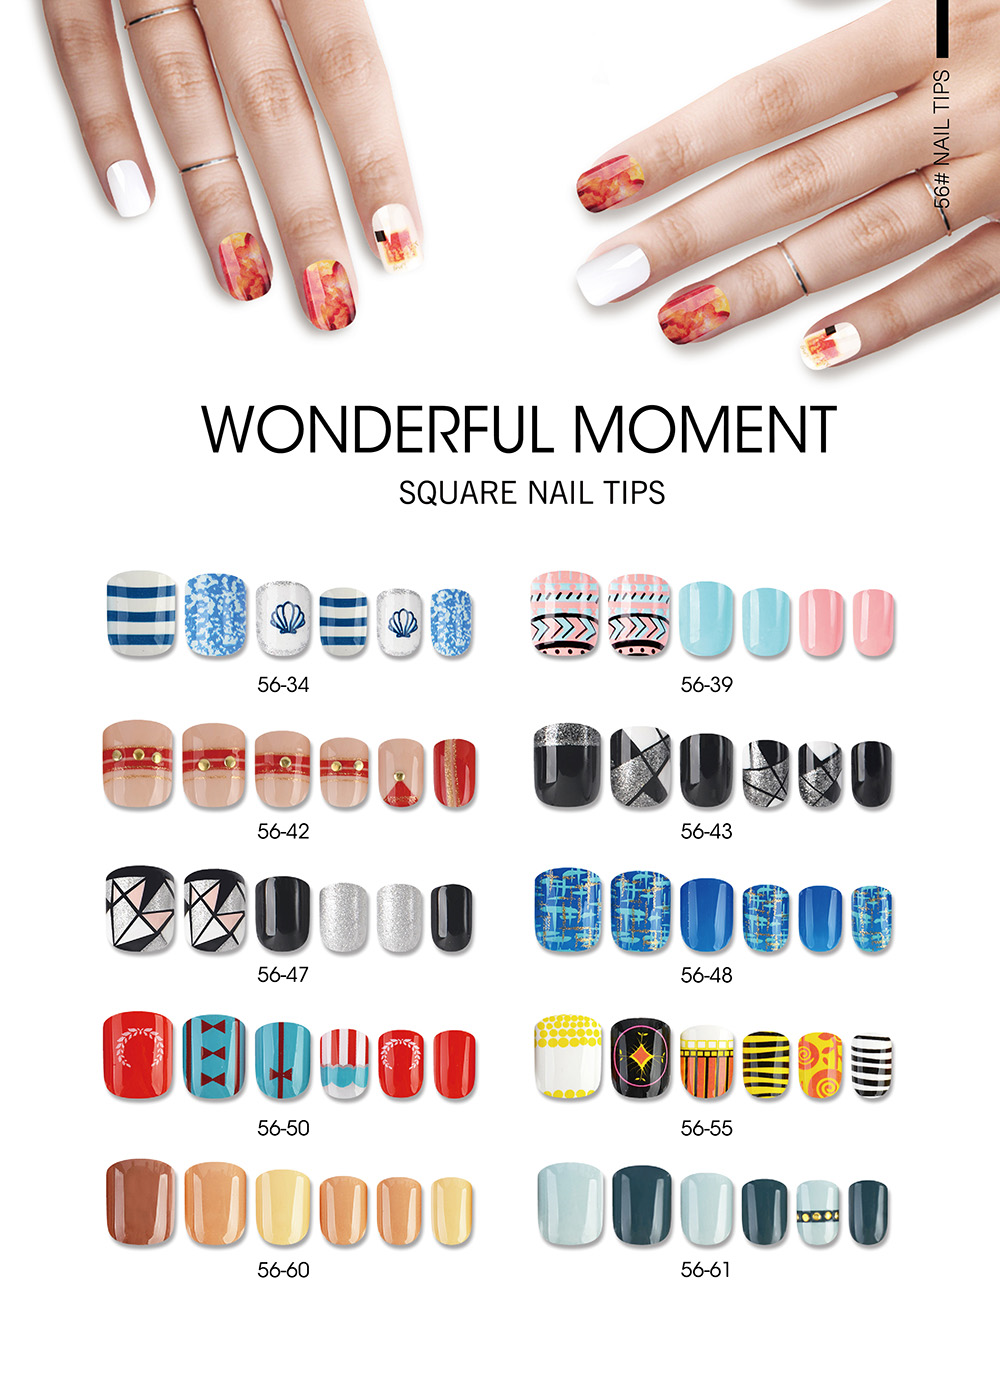 WONDERFUL MOMENT SQUARE NAIL TIPS